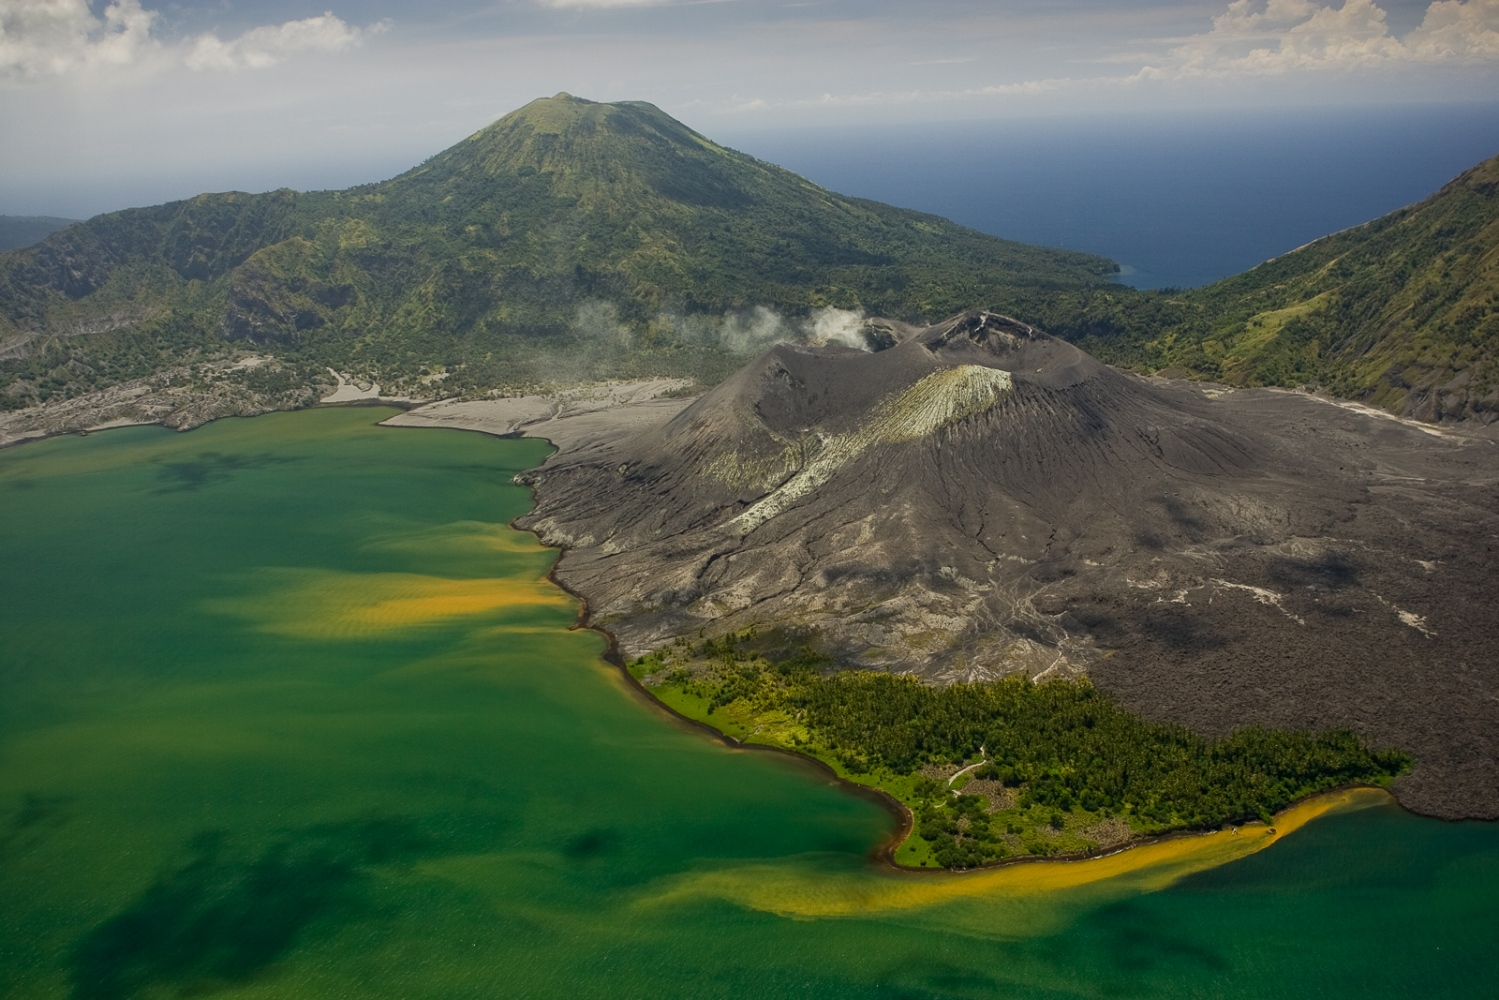 Still active Tavurvur volcano in New Britain. Tavurvur erupted with a vengeance in 1994, wiping out the nearby town of Rabaul.